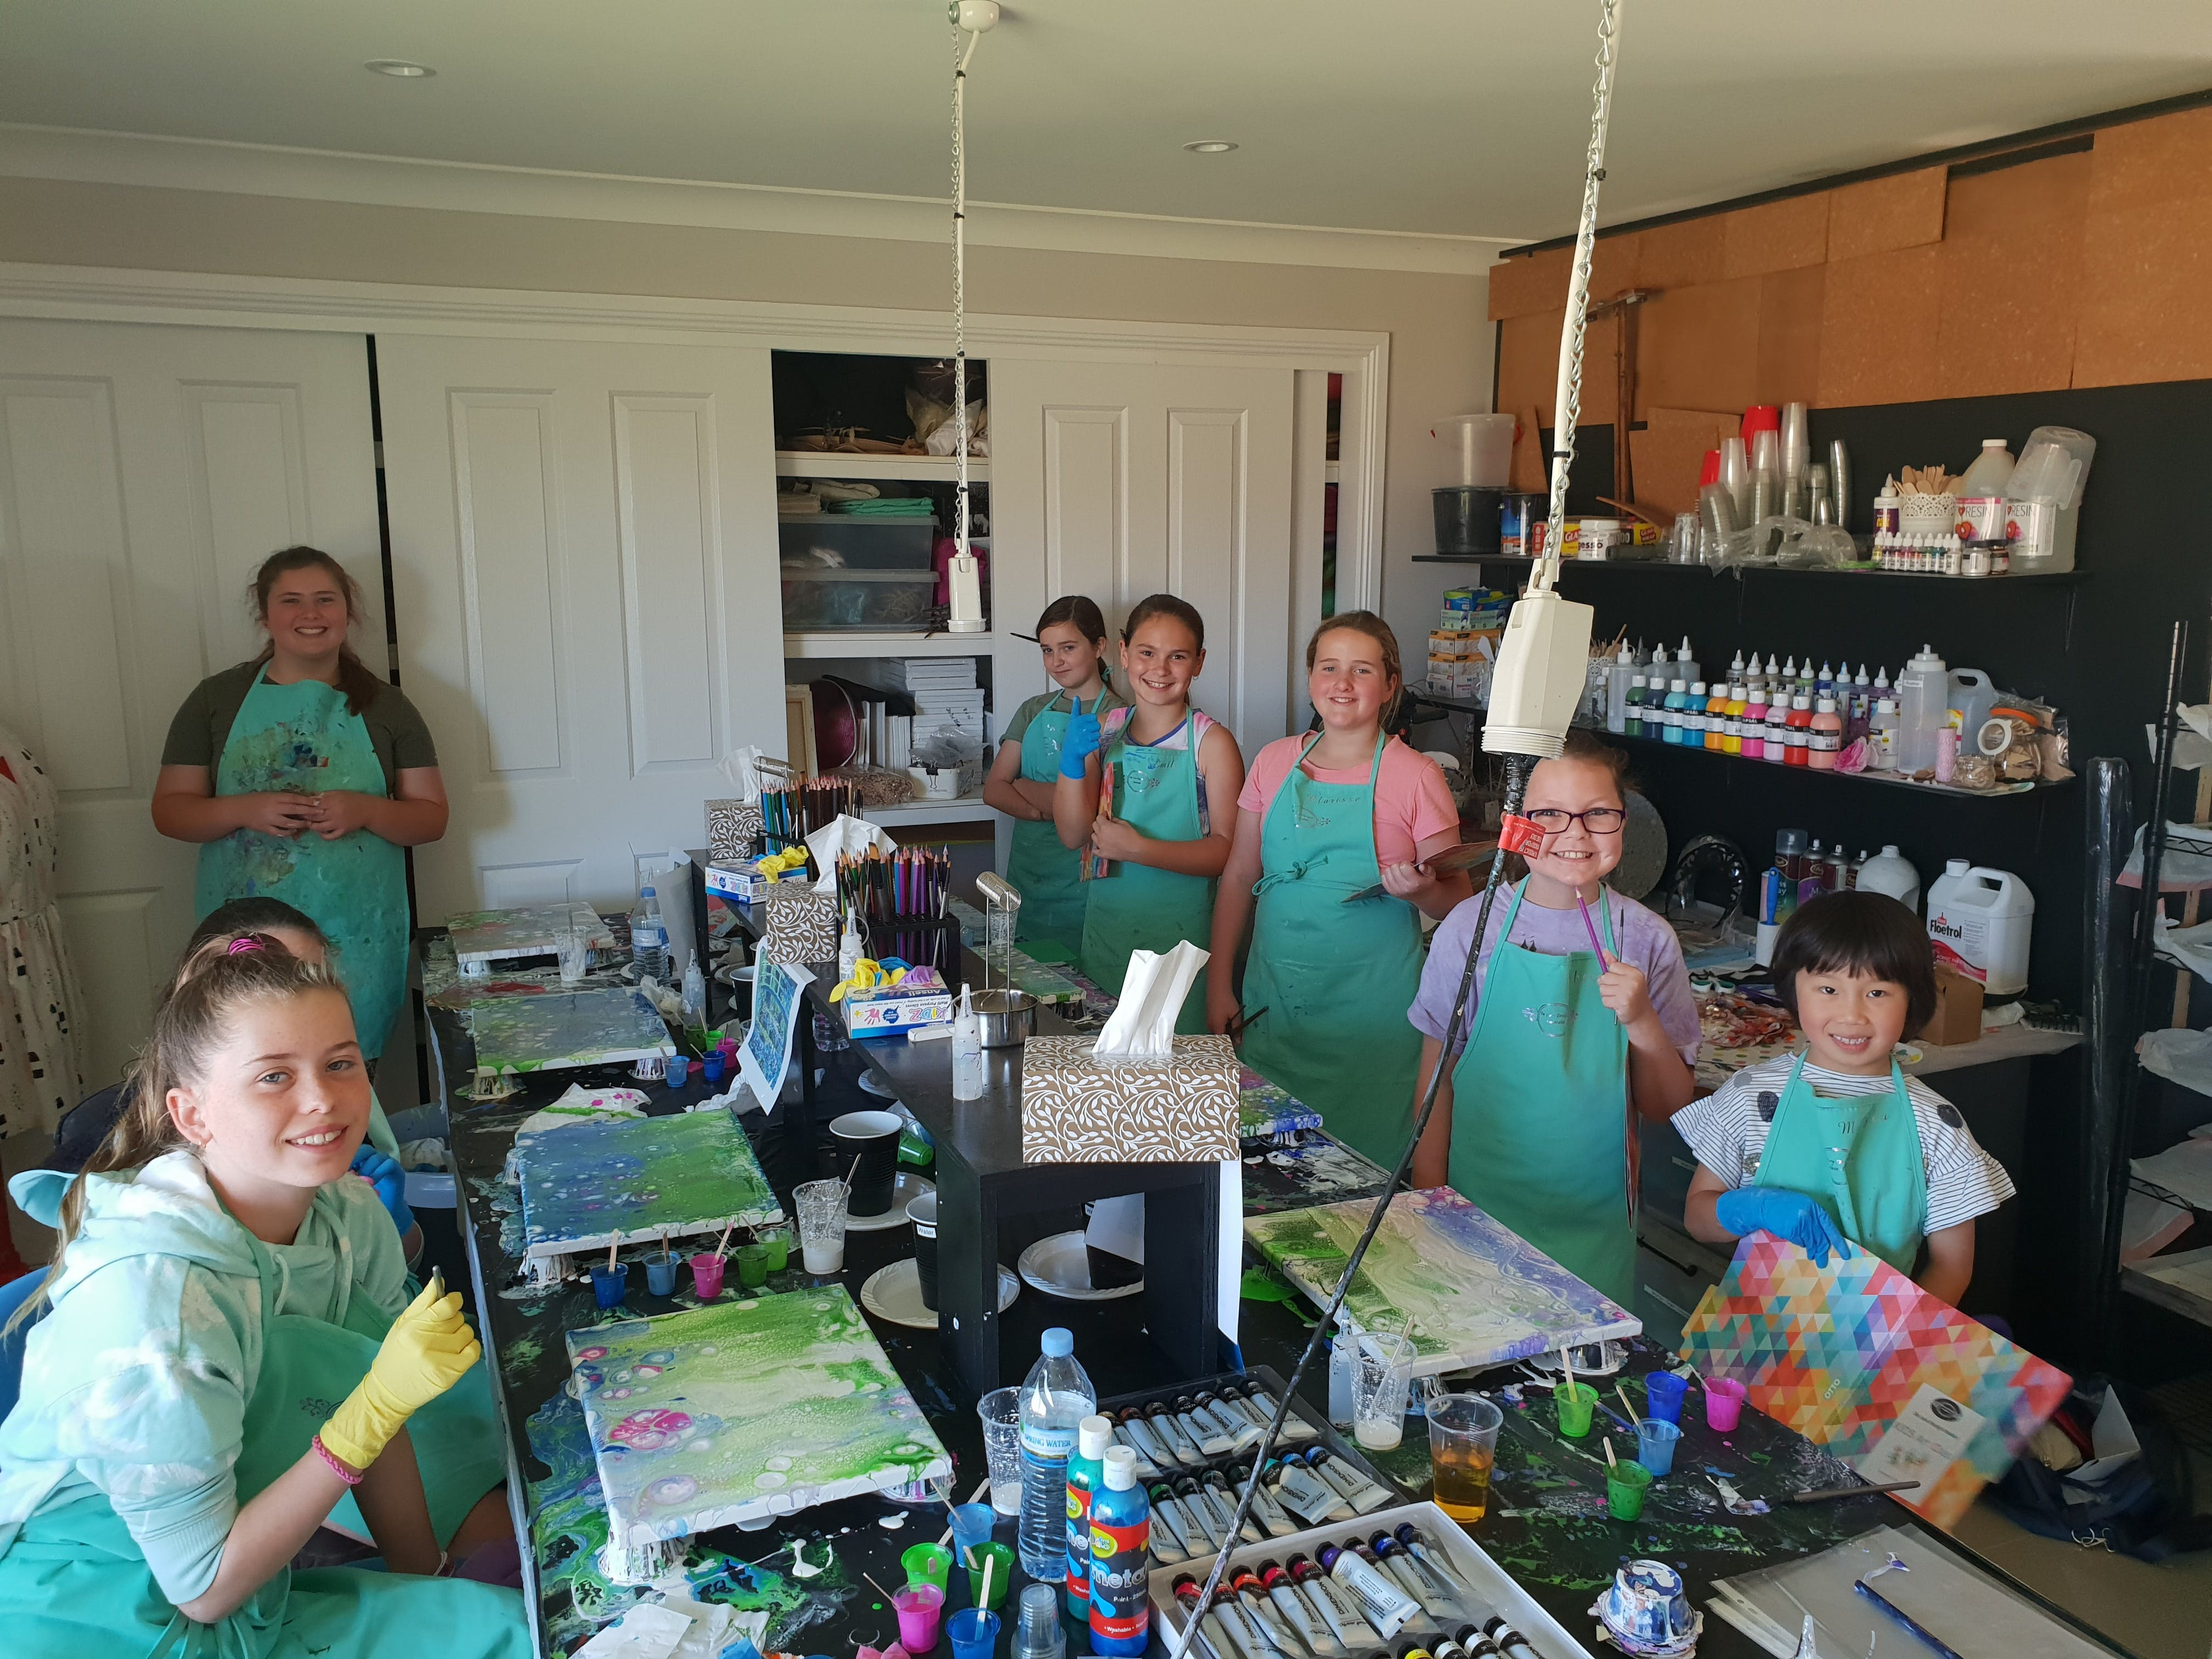 School holidays - Kids art class - Painting - Lismore Accommodation